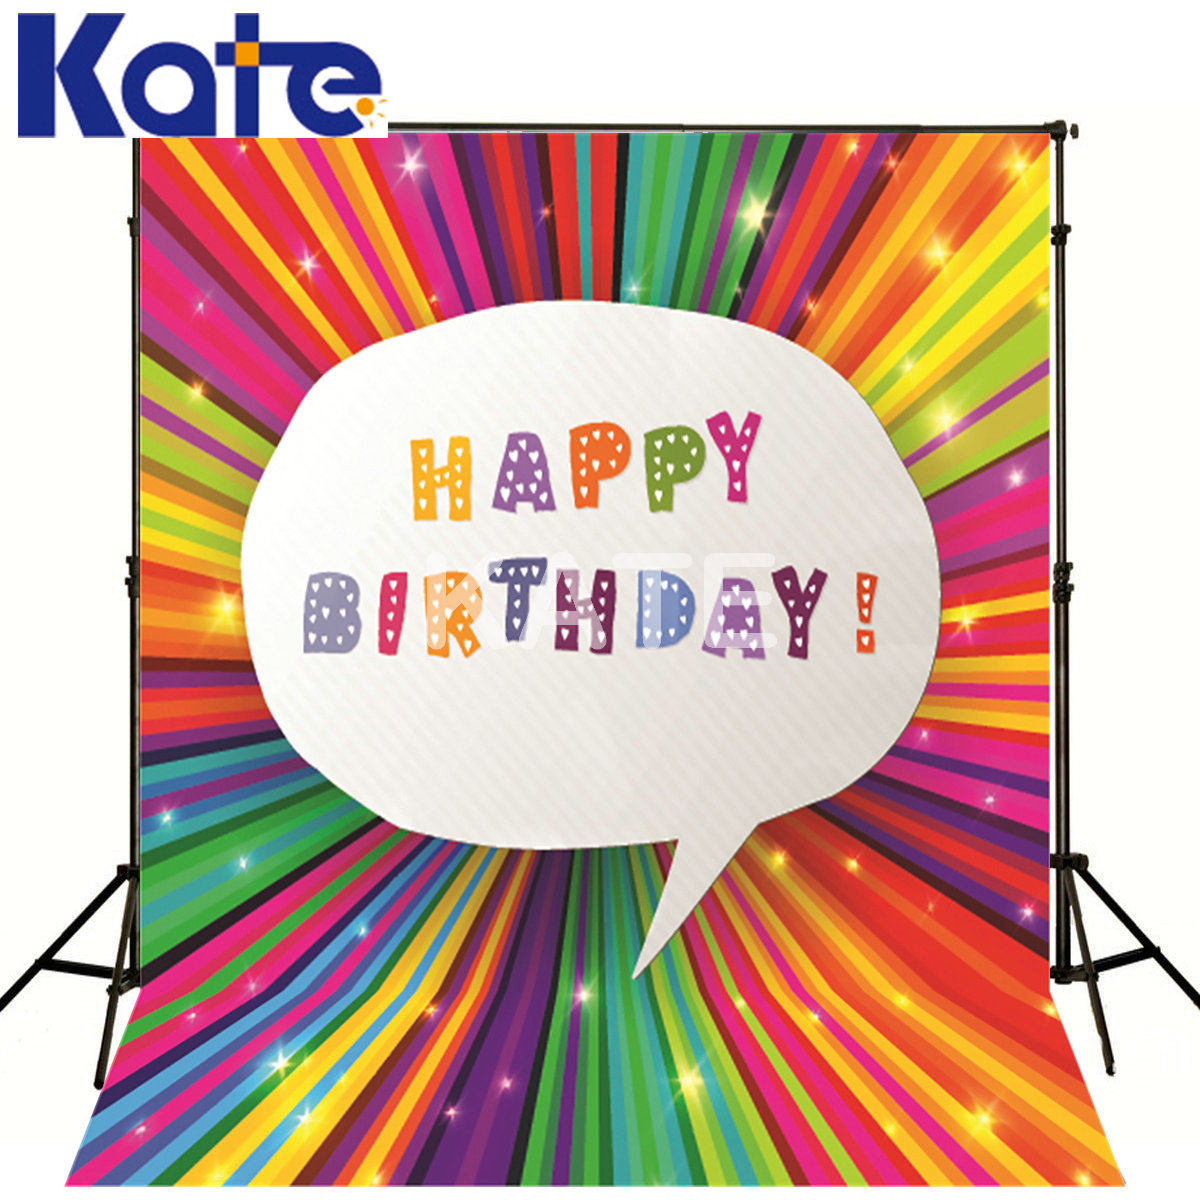 Kate Colorful Photography Backdrop Fotografia Happy Birthday For Children Kate Photography Studio Backgrounds our kate